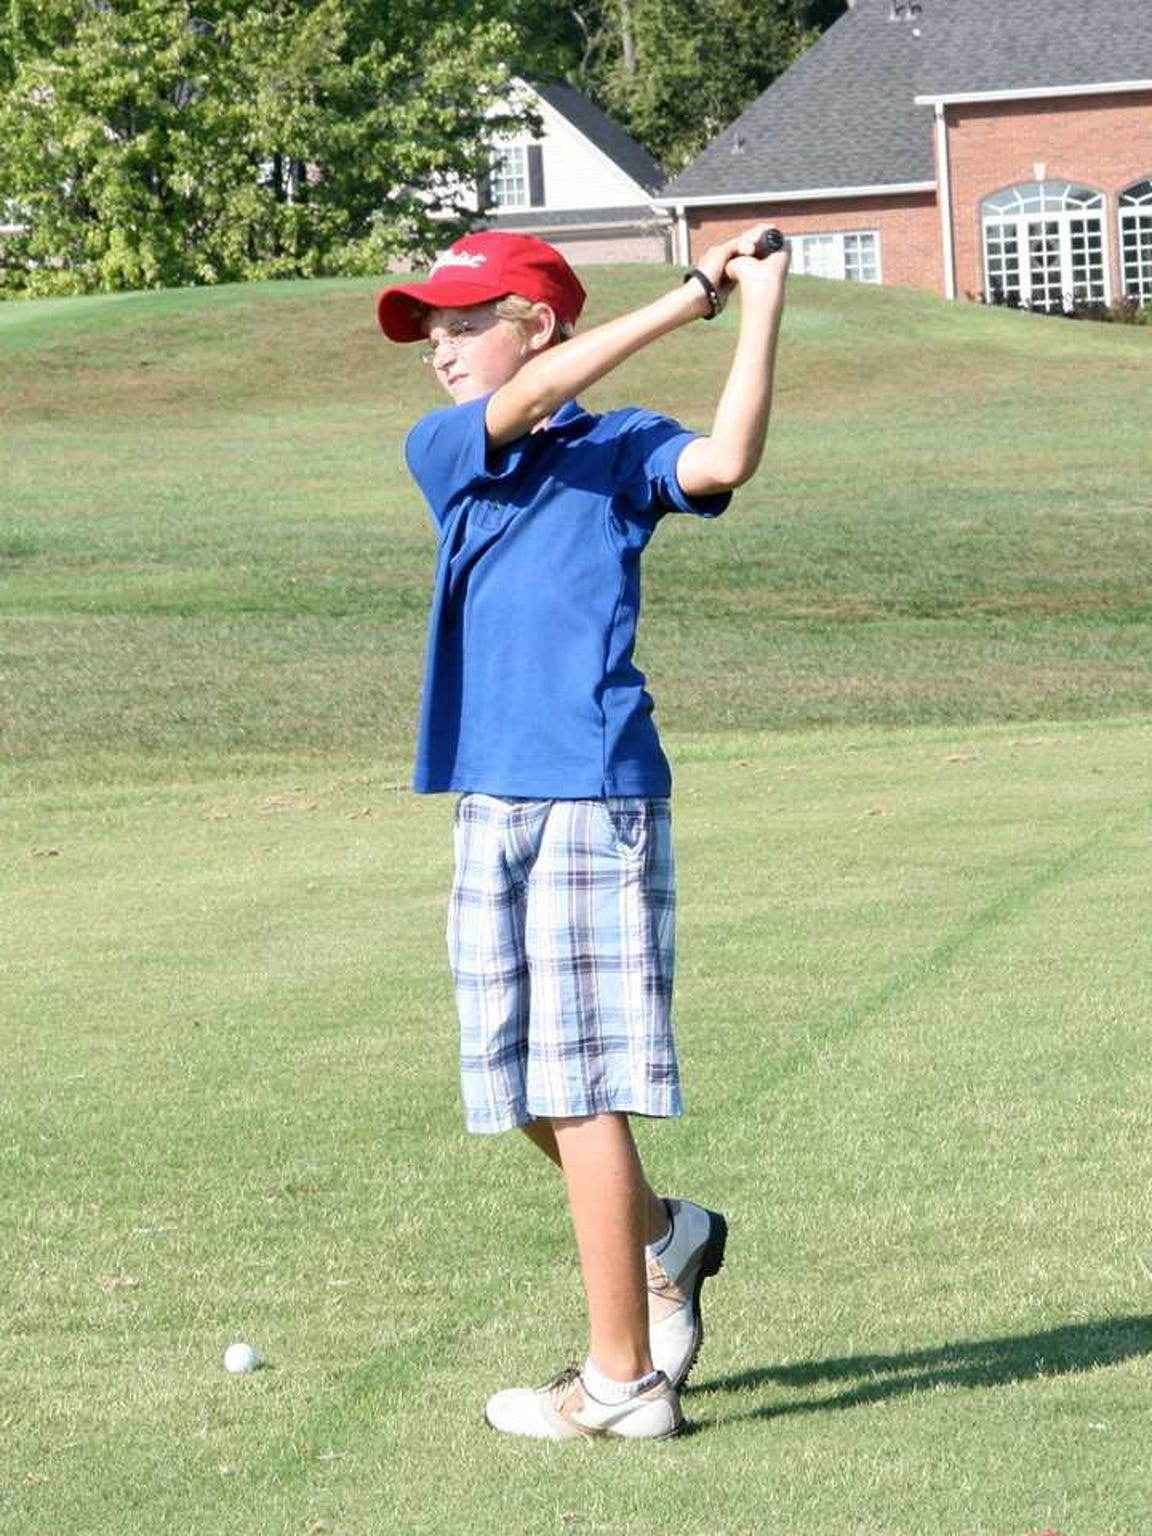 Dylan Meyer takes a practice swing during his younger